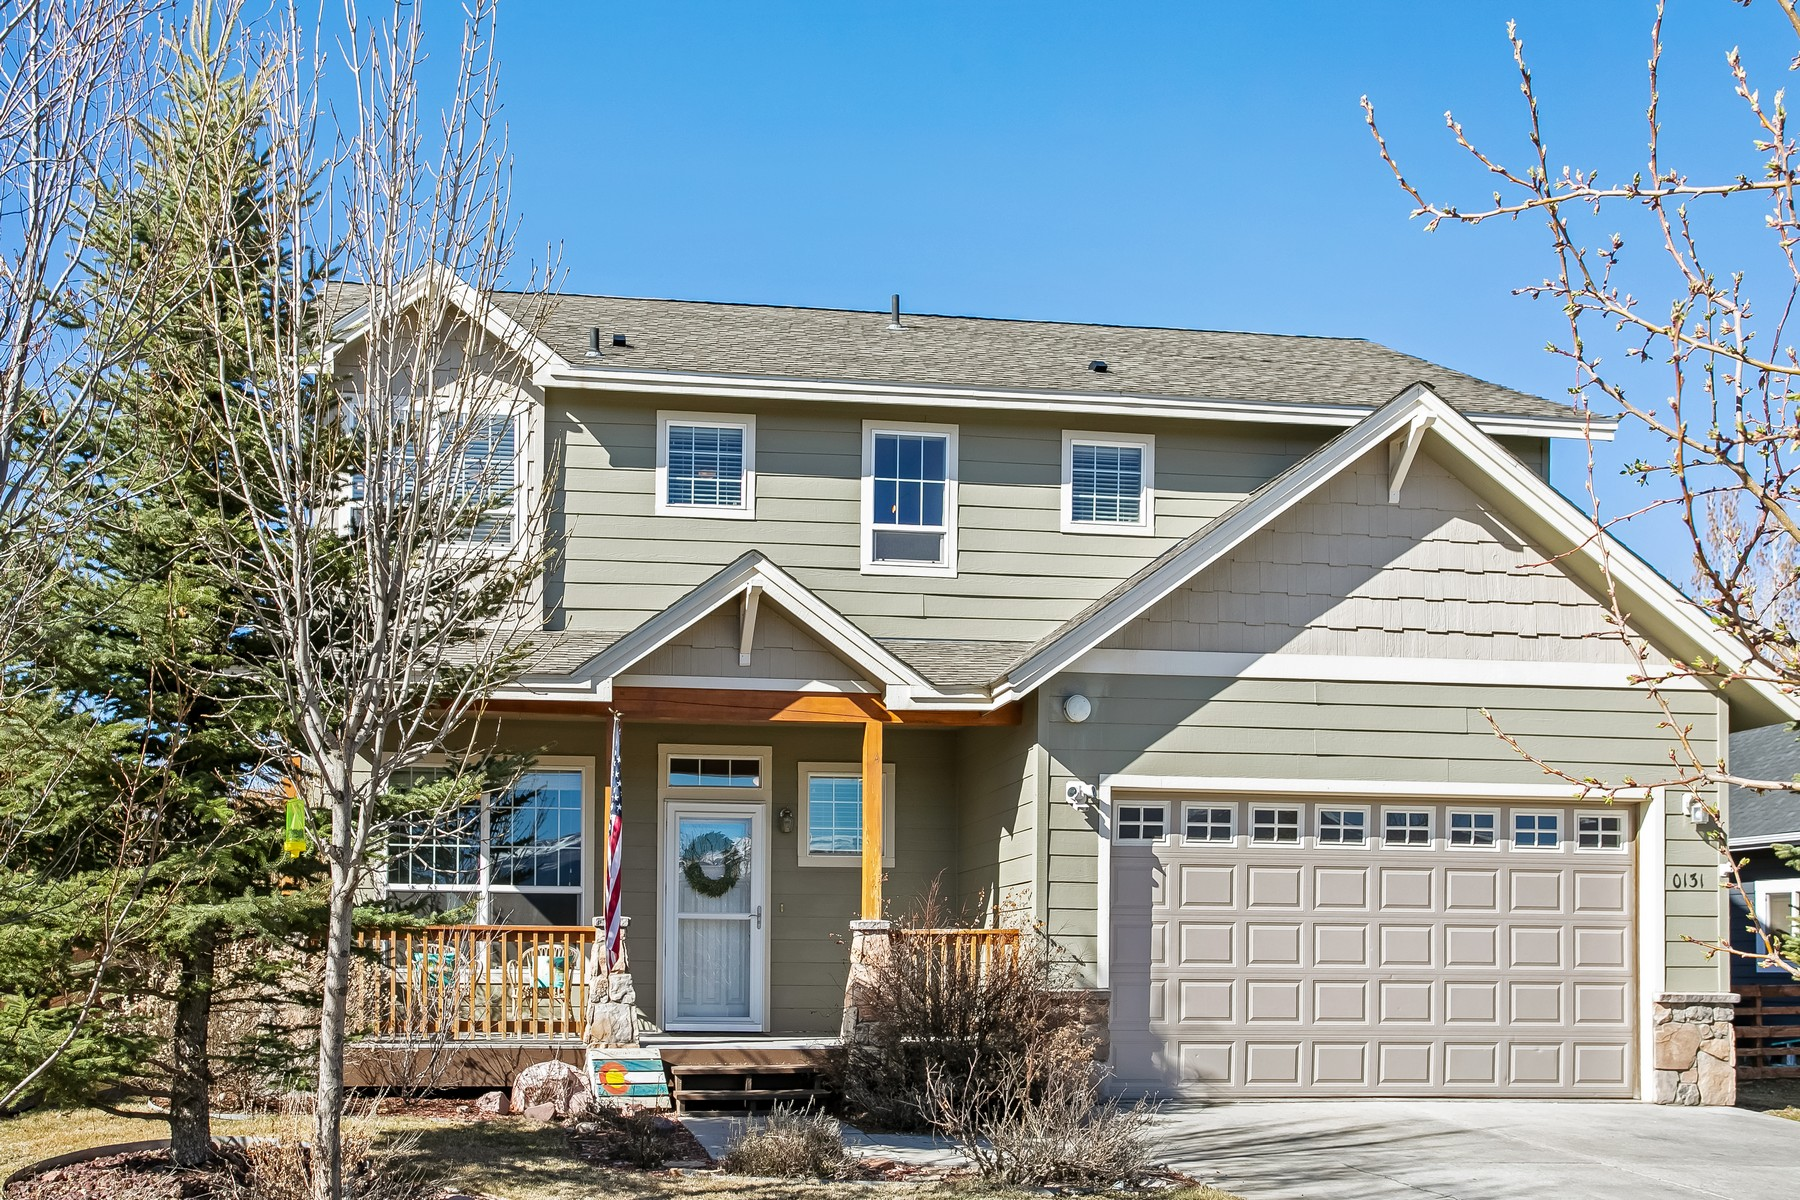 Single Family Homes for Sale at Live your best life in a spacious, charming and updated single-family residence 131 Cochise Drive, Gypsum, Colorado 81637 United States